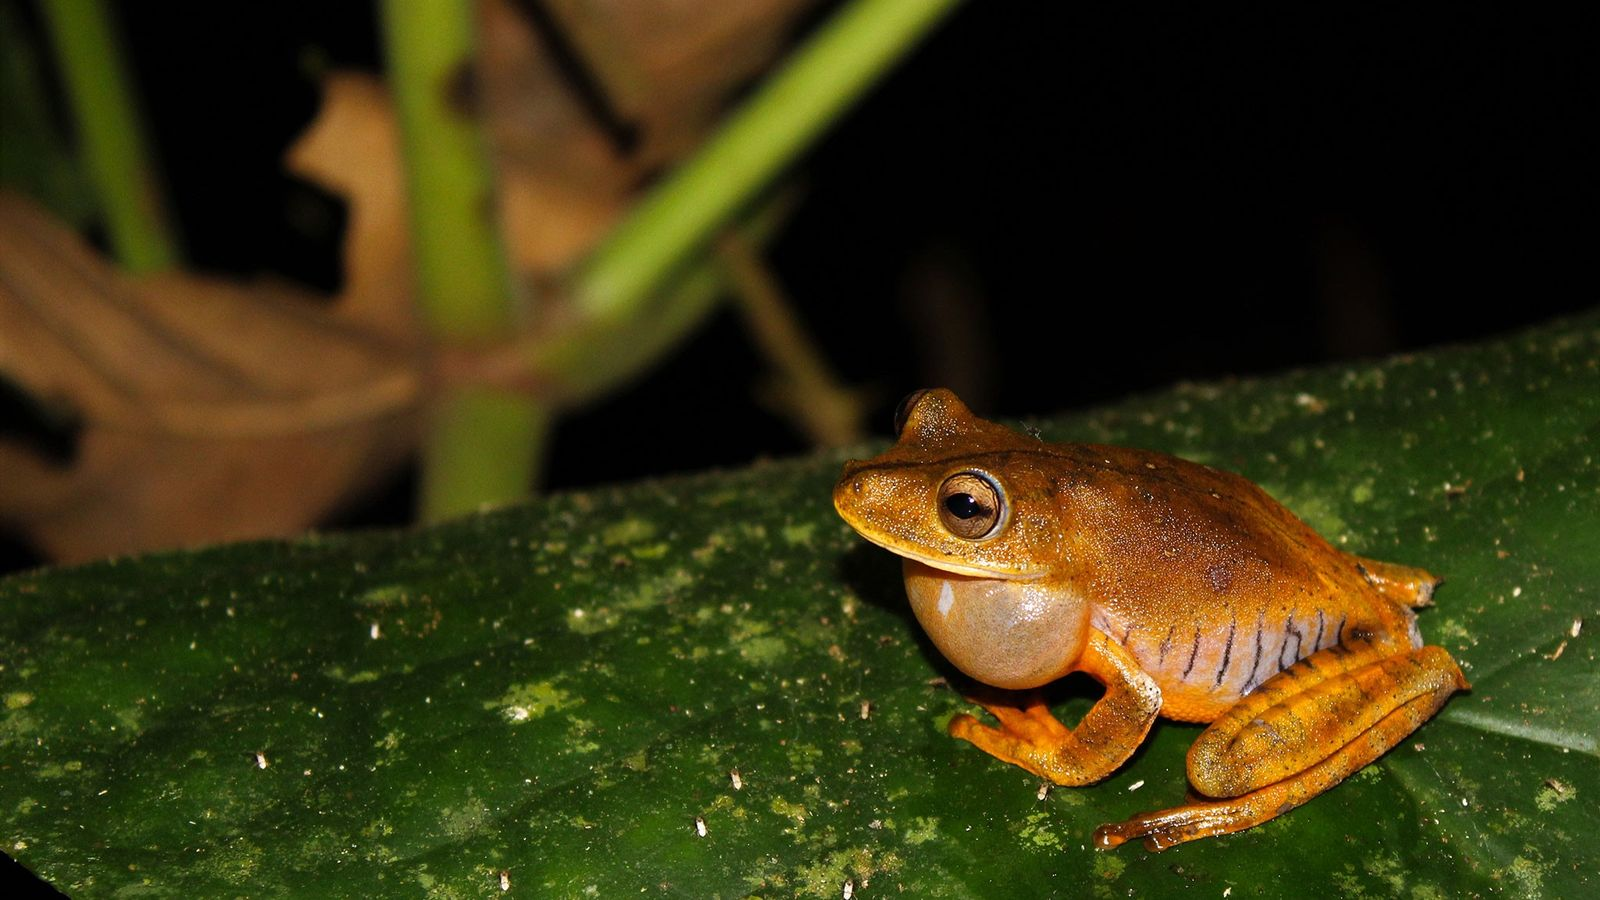 The new species is named after the legendary Icamiabas indigenous warrior tribe from Amazonia.